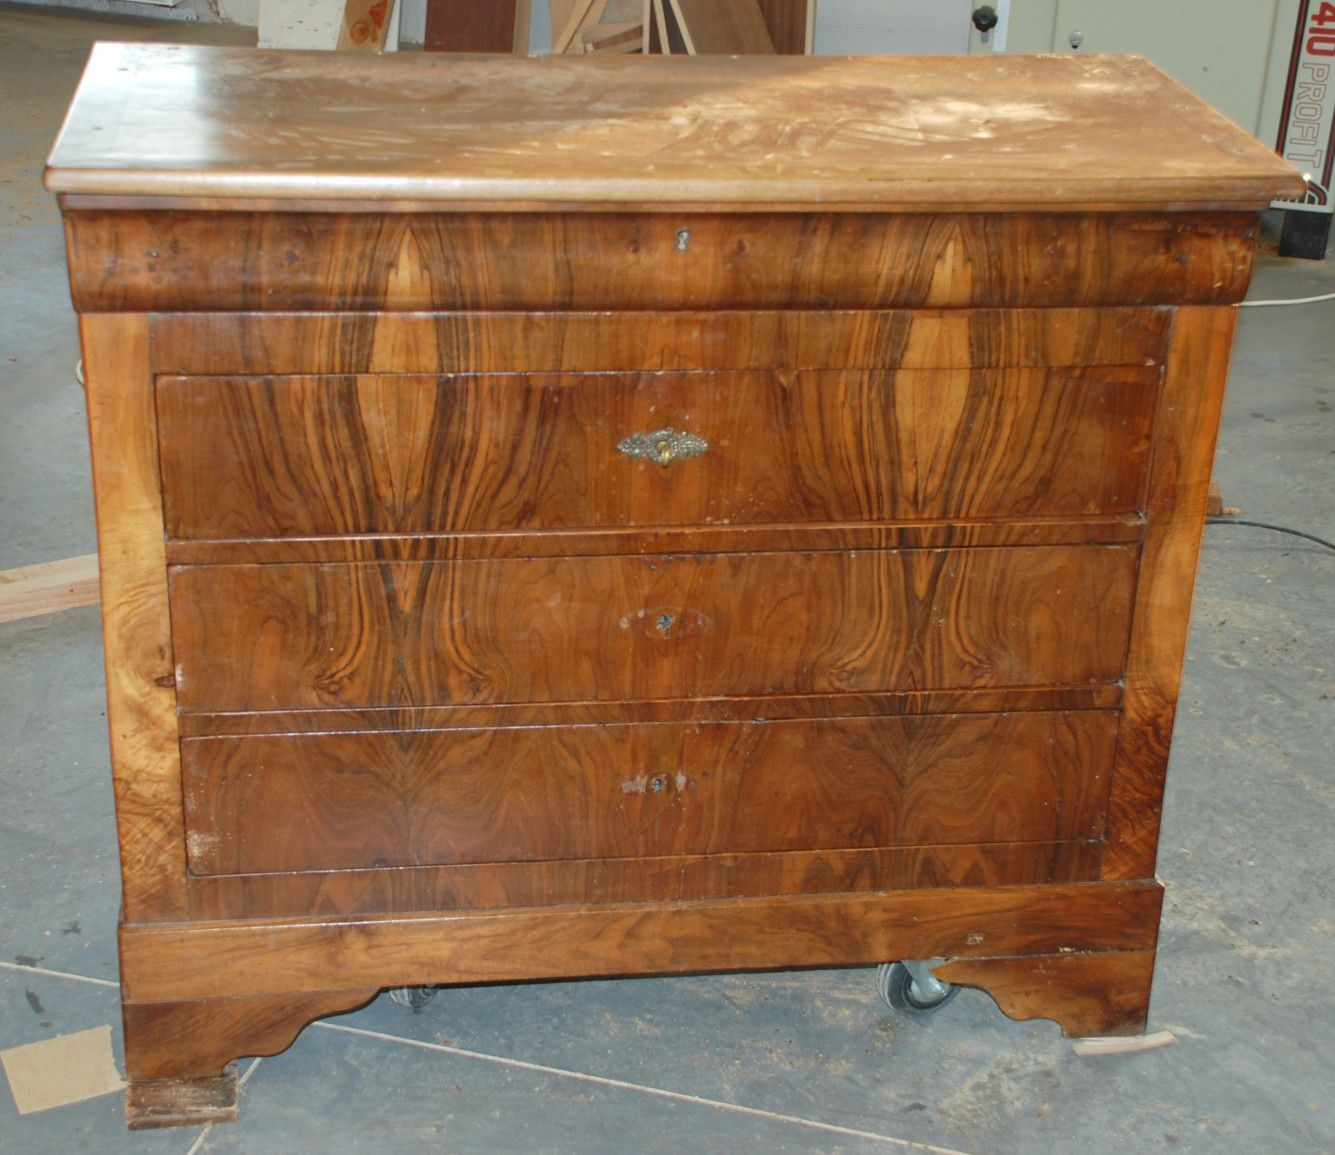 Transformation et restauration dune commode en noyer